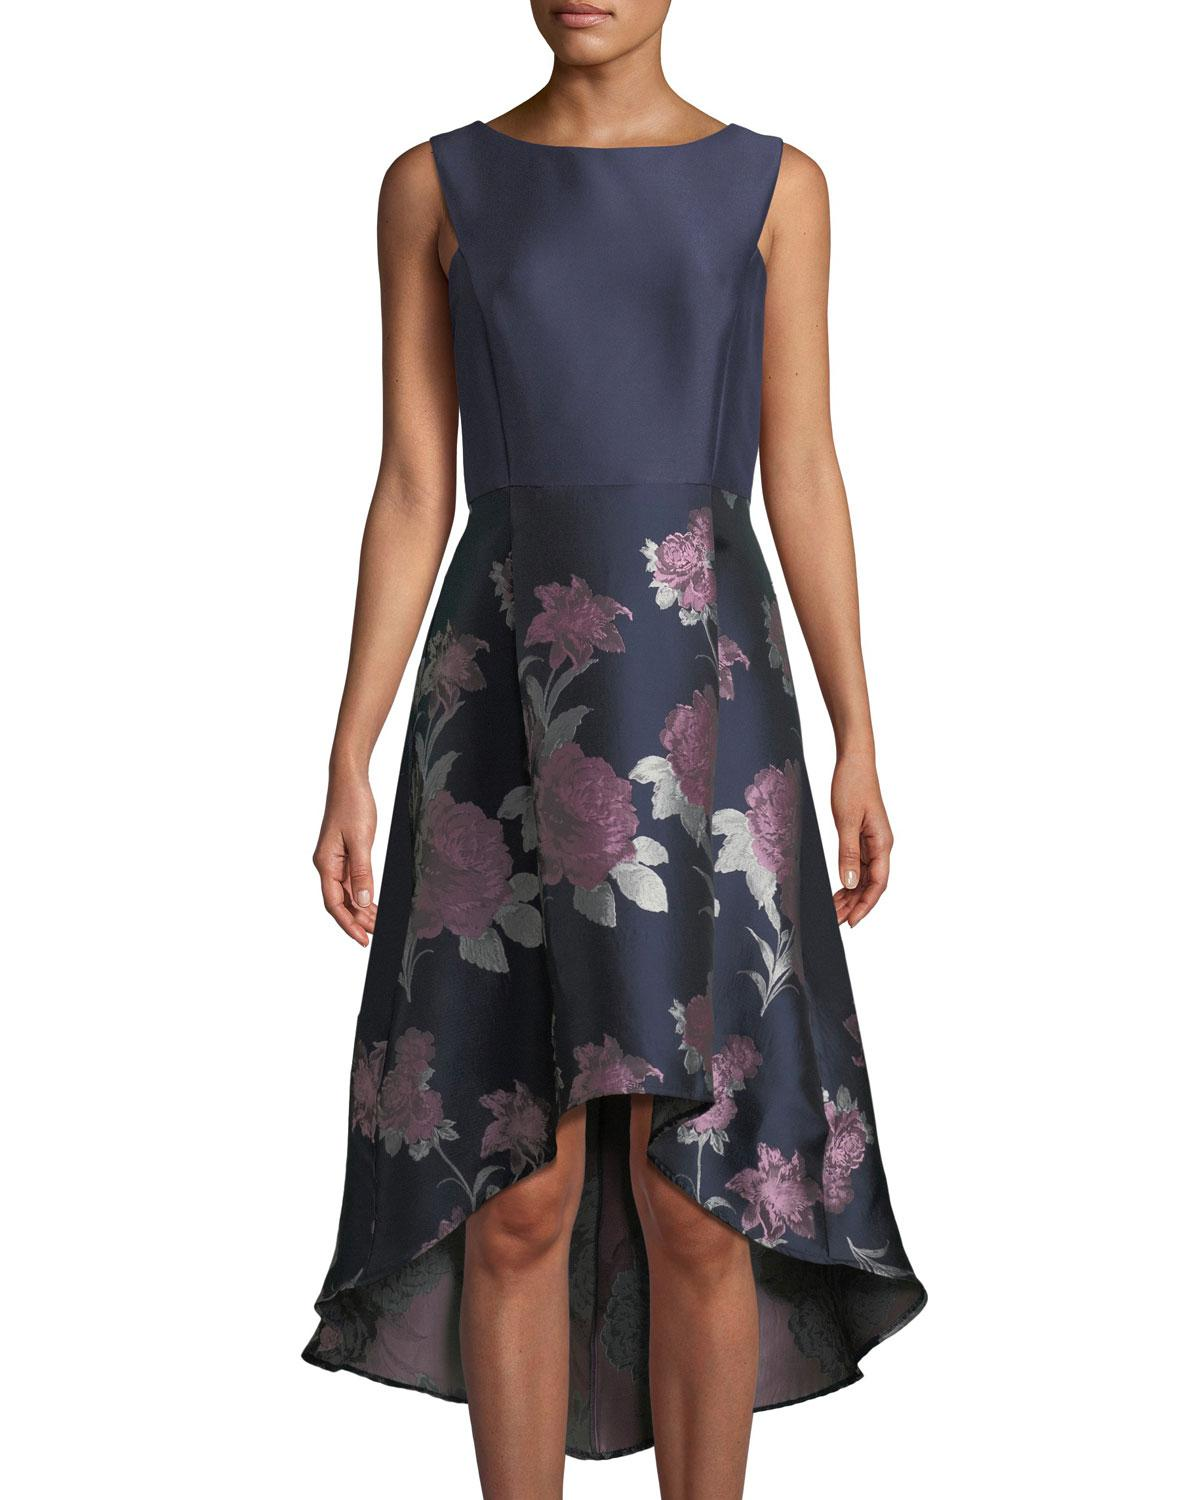 bb0952038e Donna Ricco Taffeta Floral-skirt High-low A-line Cocktail Dress in ...